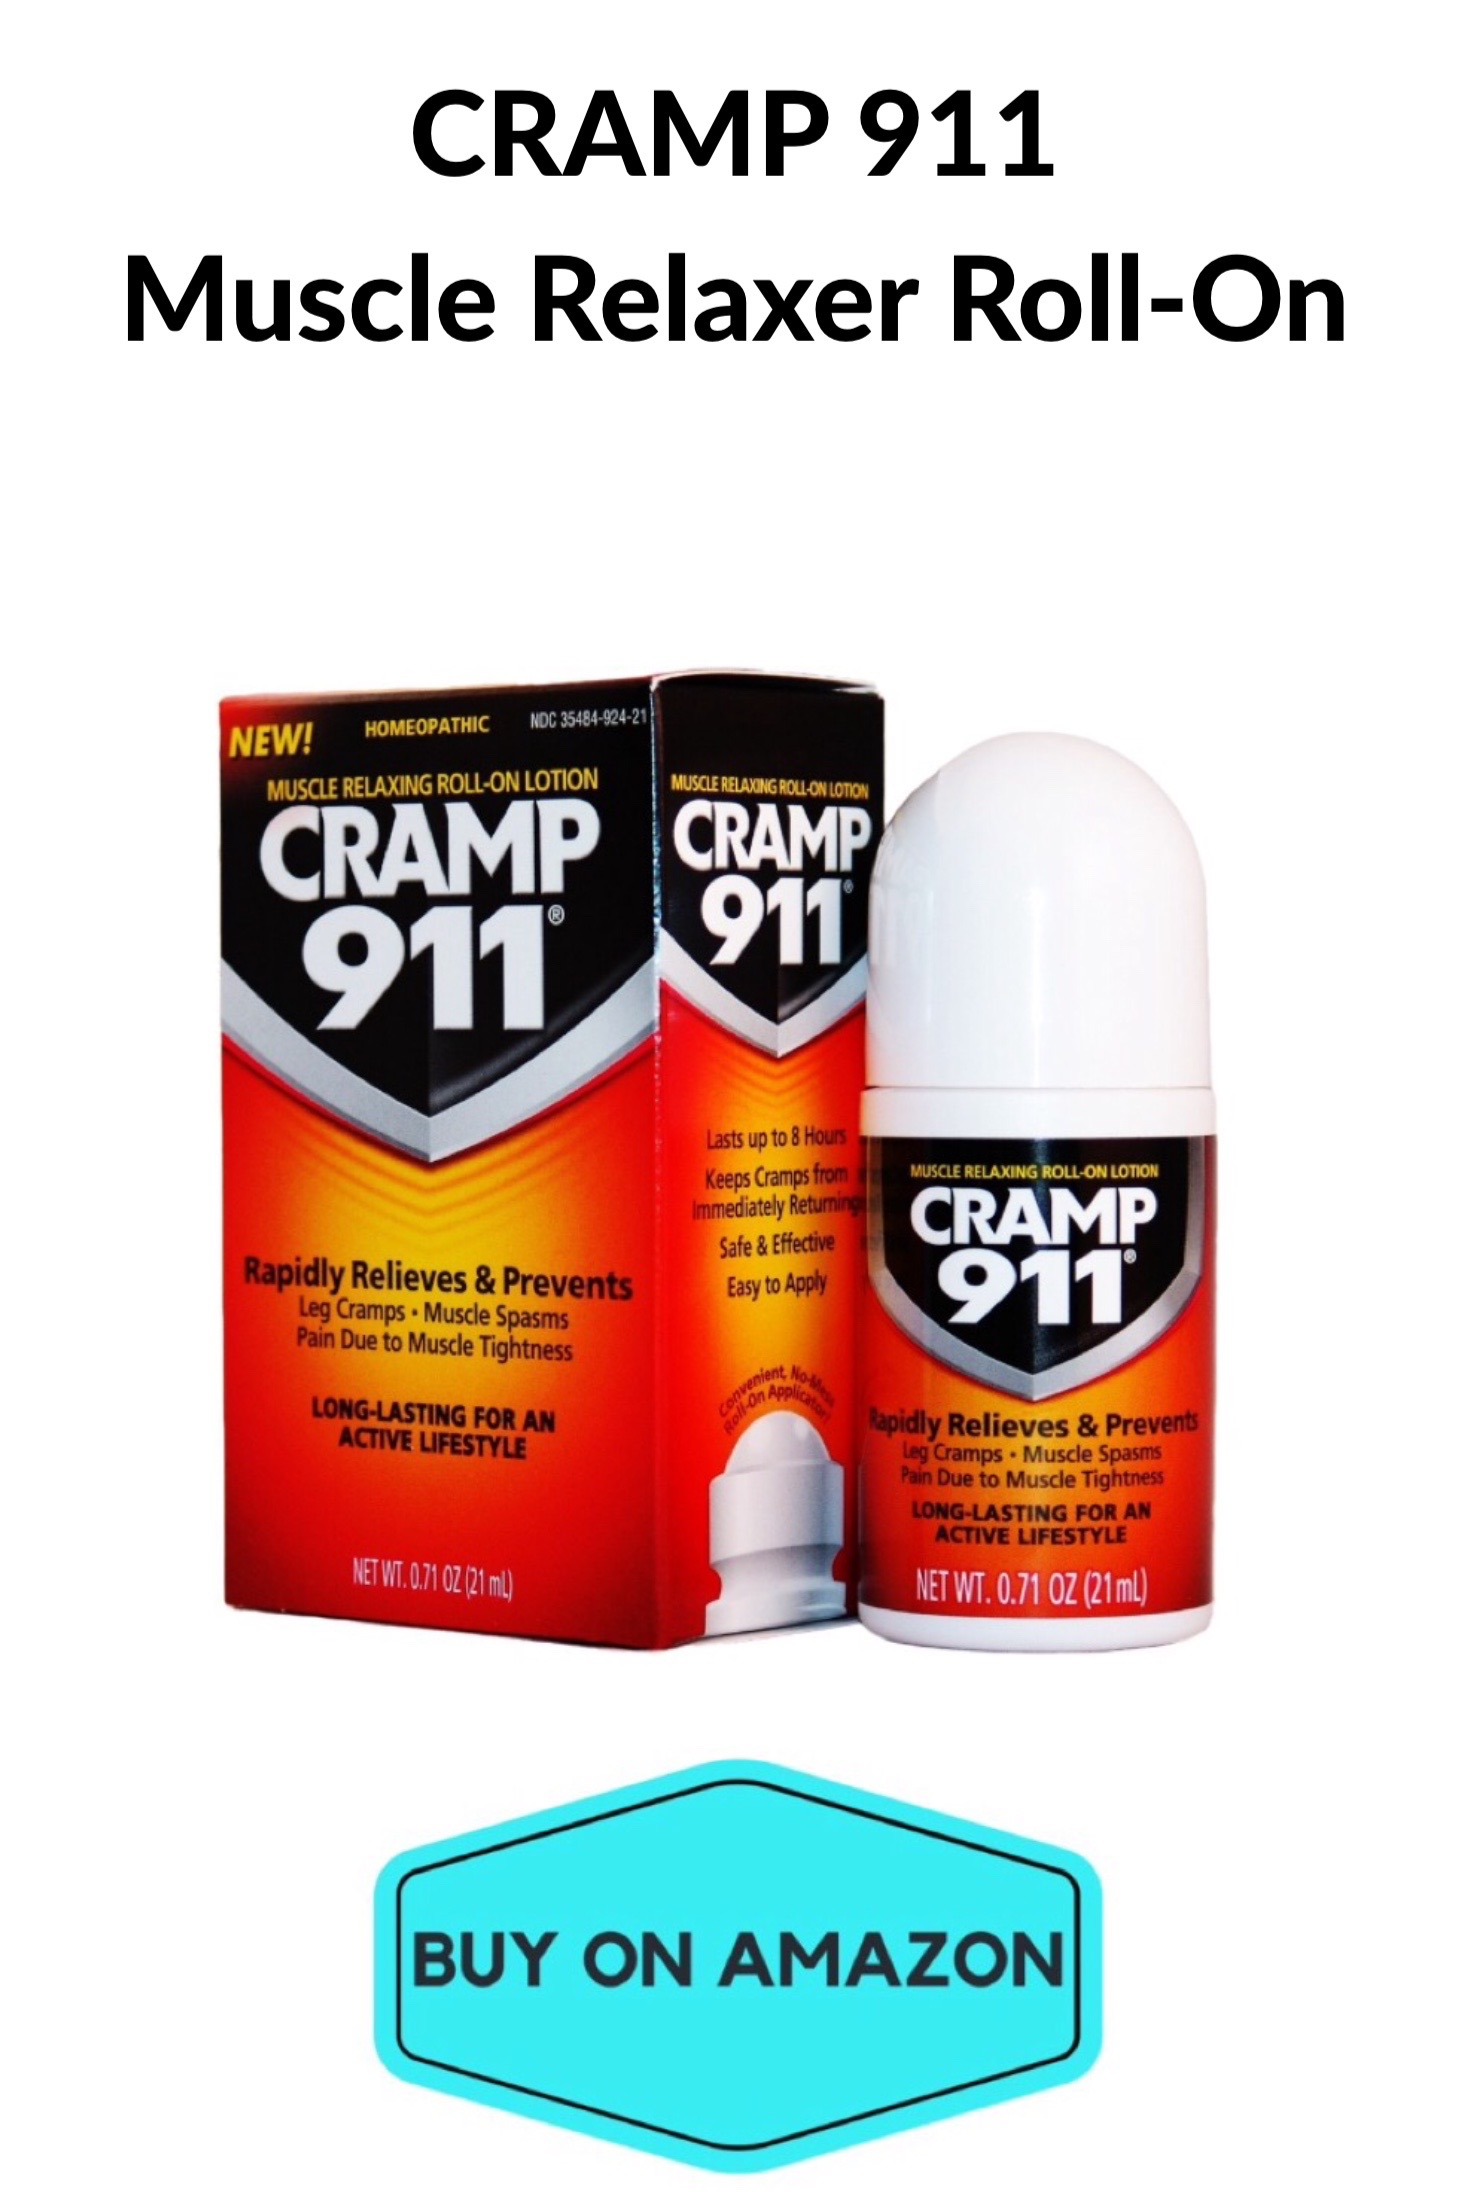 CRAMP 911 Muscle Relaxer Roll-On